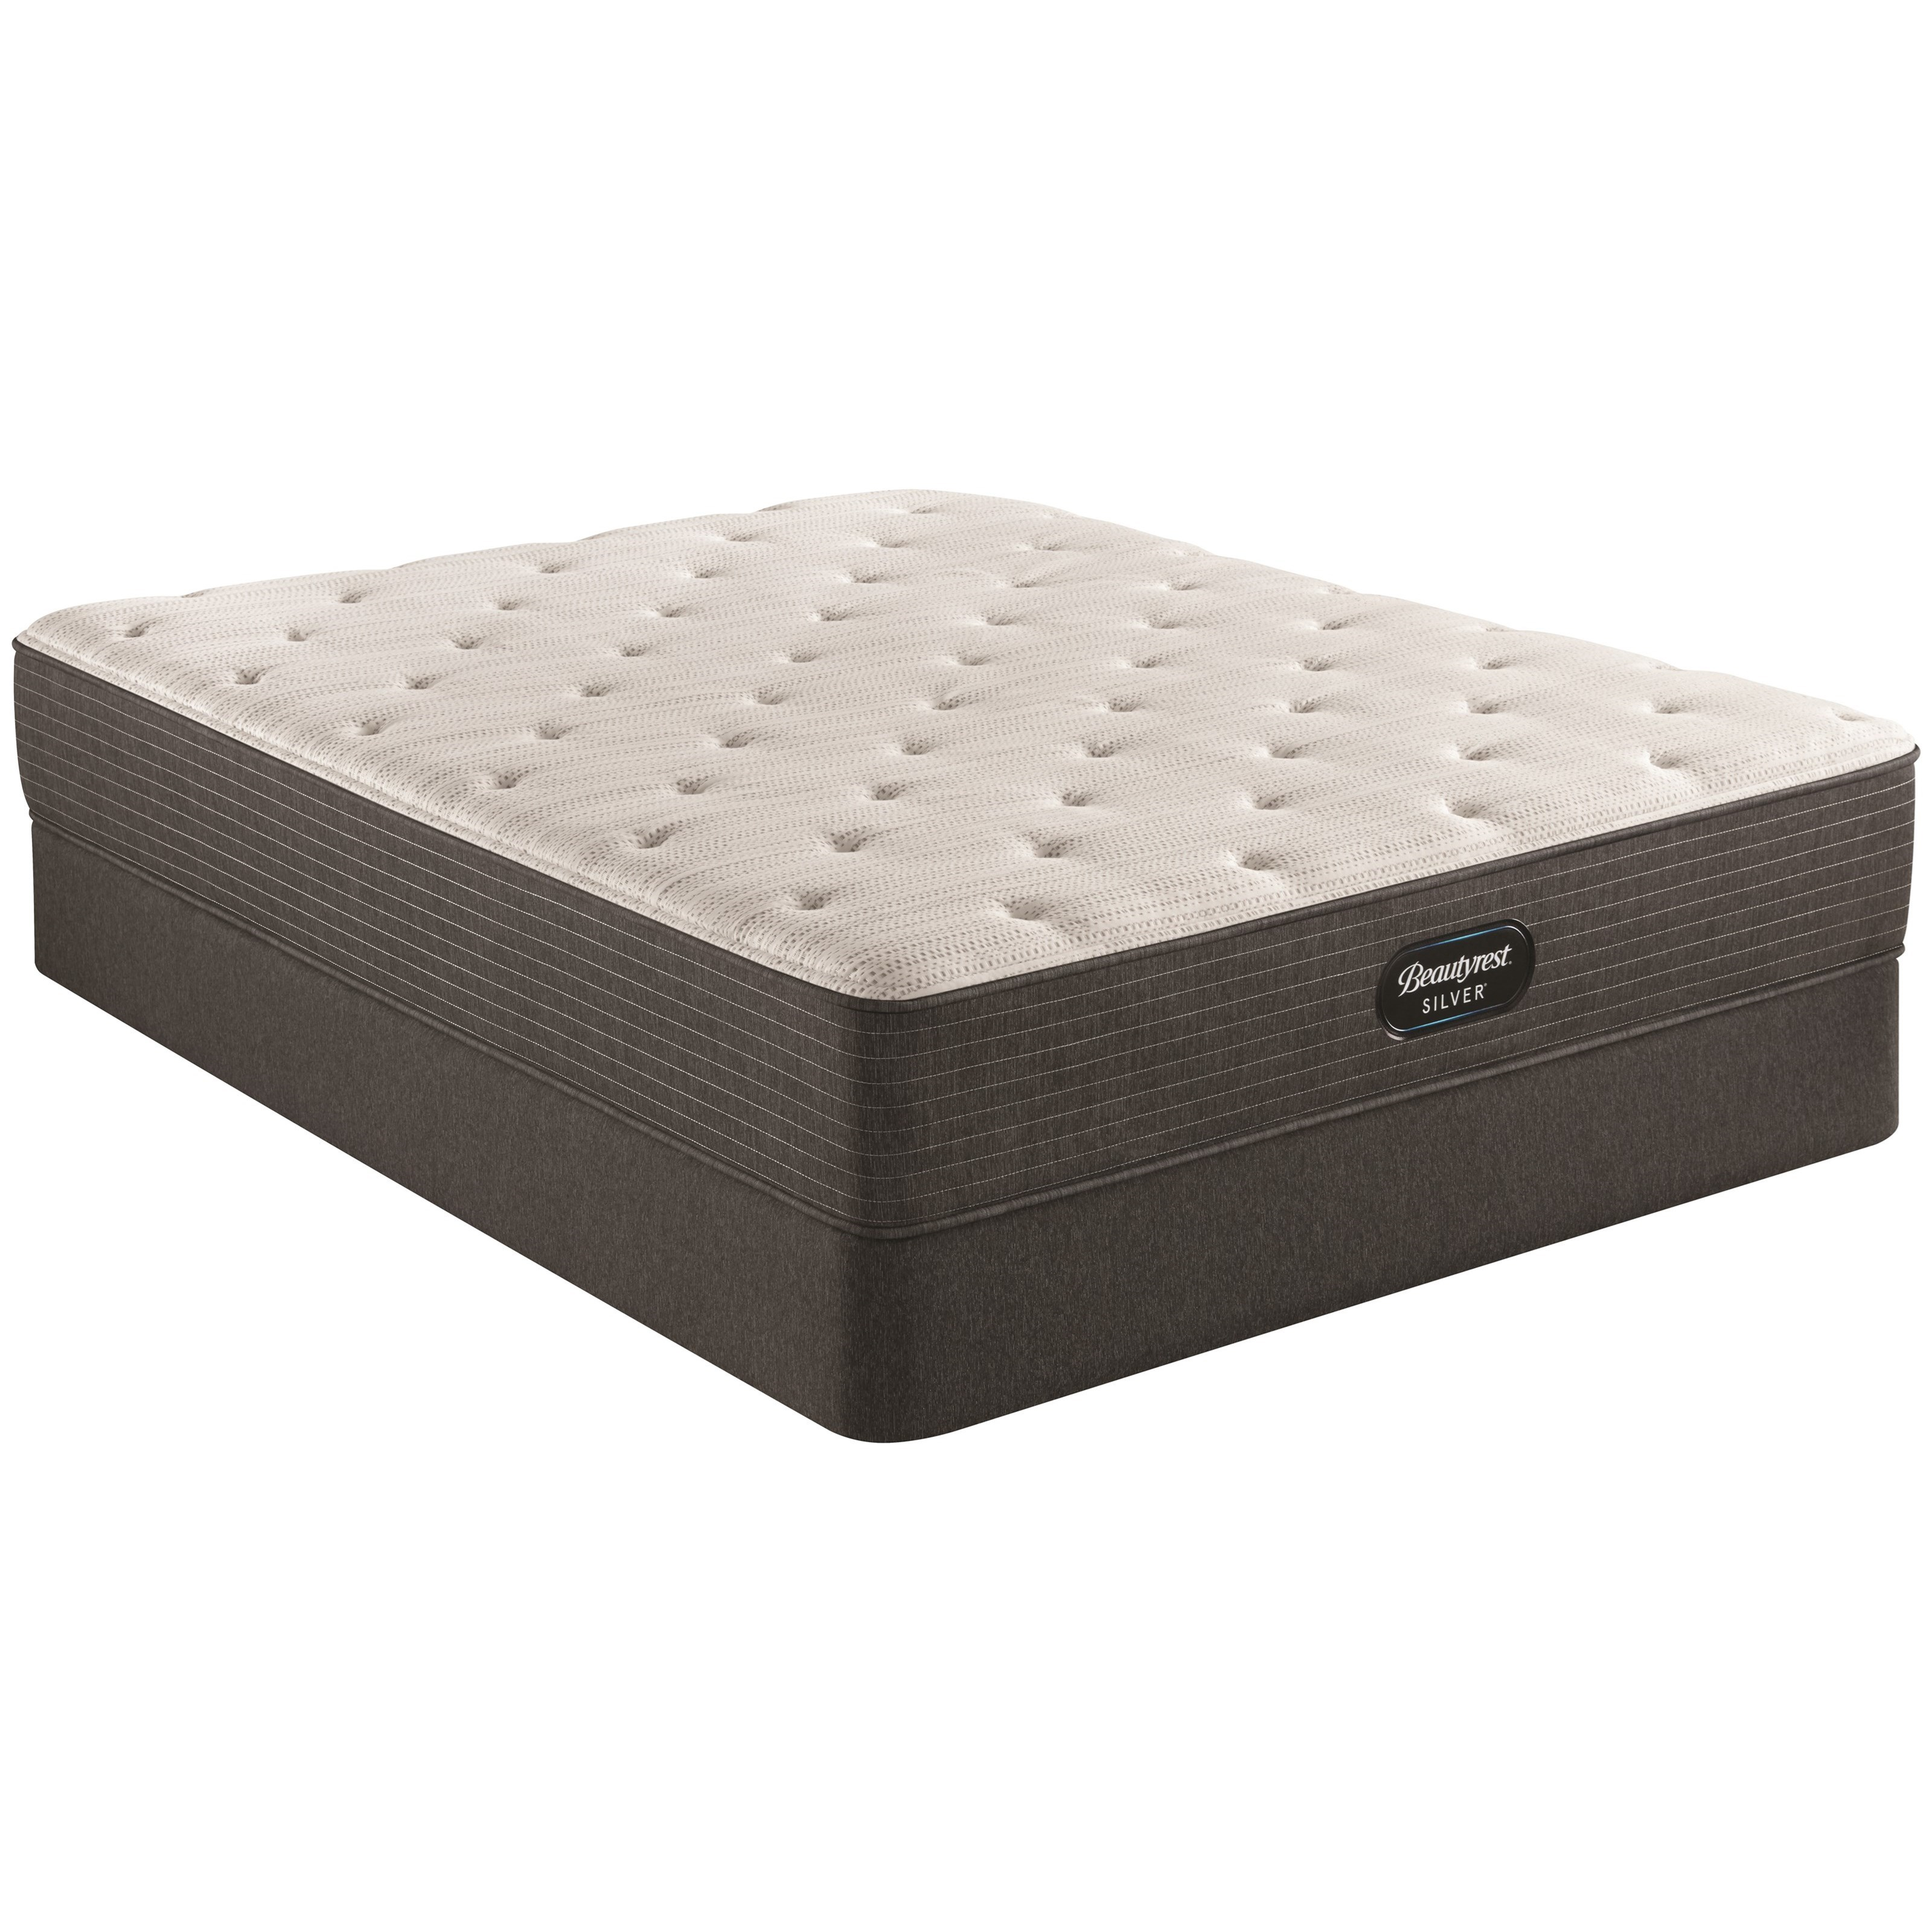 """BRS900 Medium Firm Twin 11 3/4"""" Pocketed Coil Mattress Set by Beautyrest at EFO Furniture Outlet"""